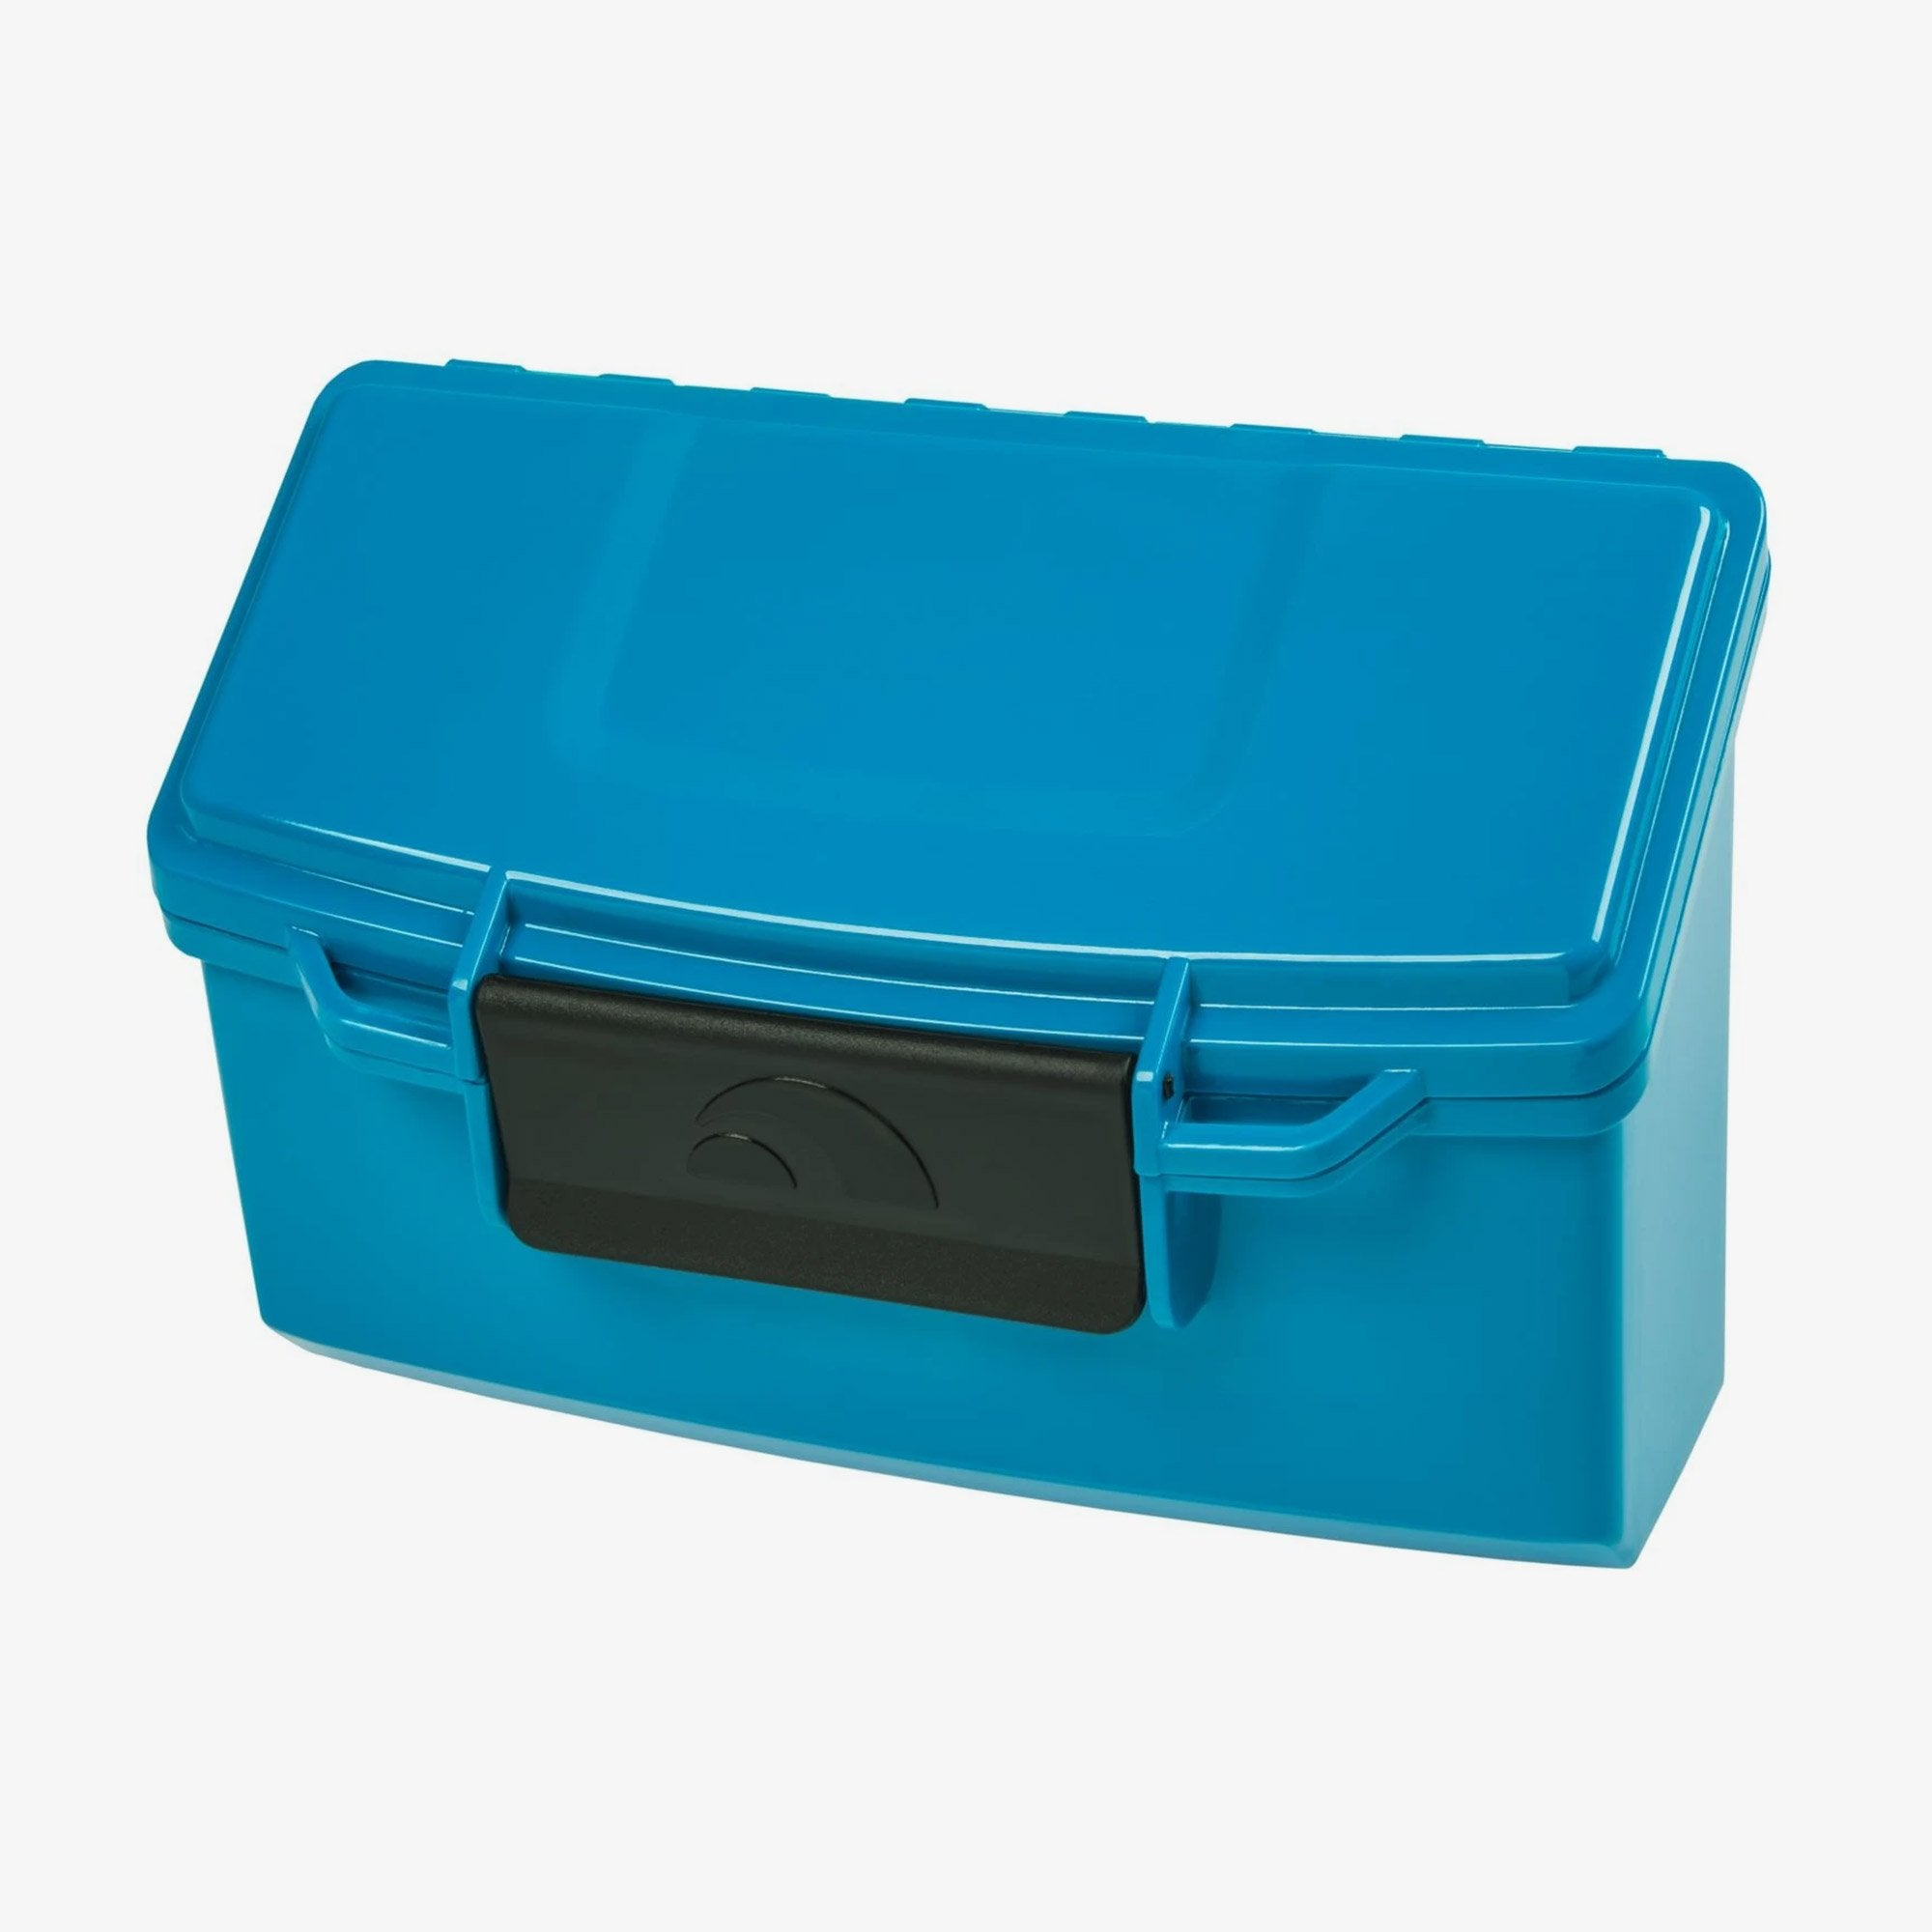 Large View | Glove Box For Trailmate Coolers in Electric Blue at Igloo Replacement Parts